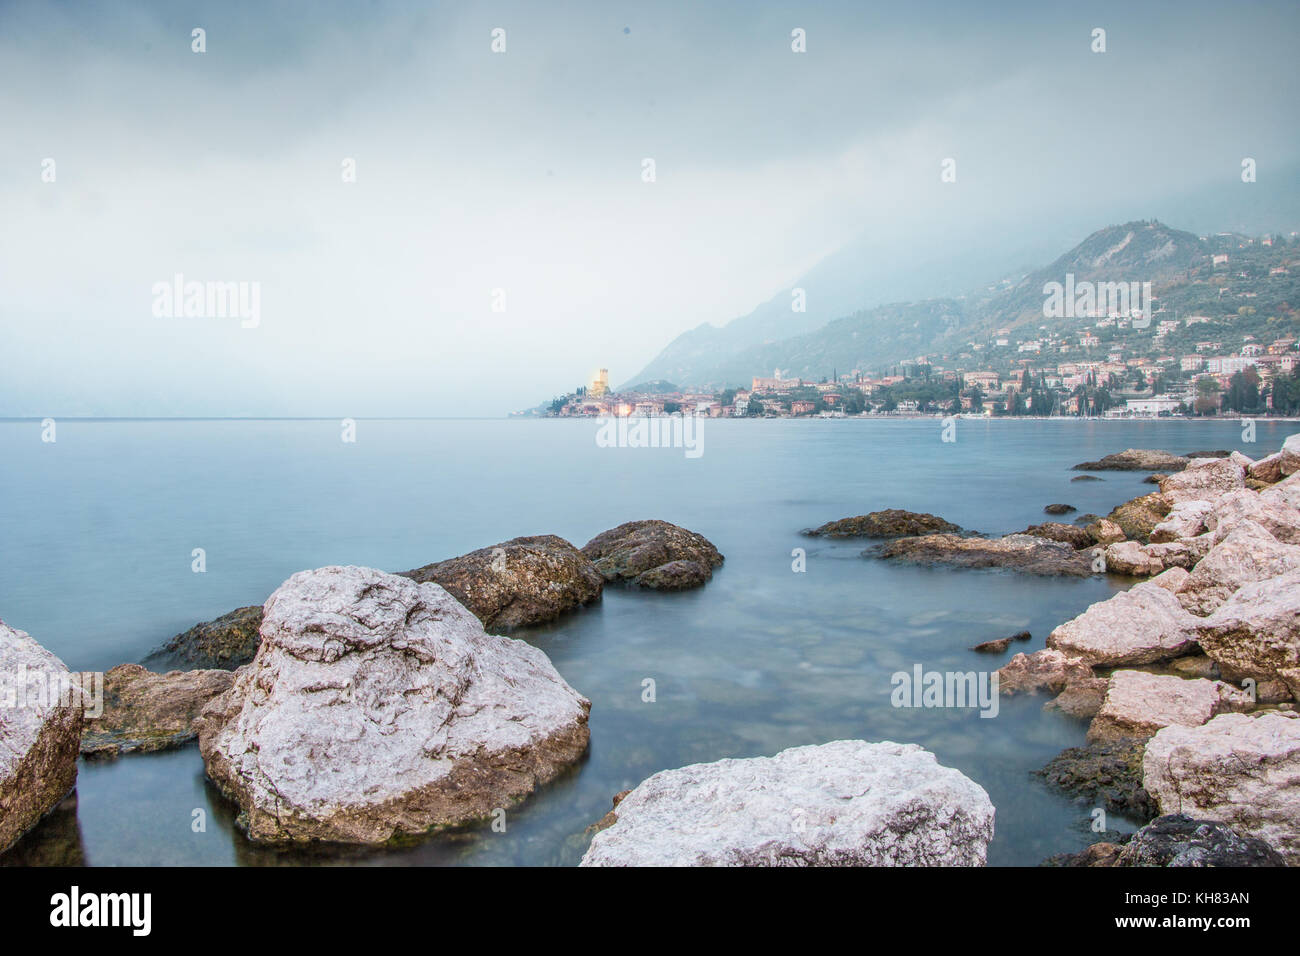 An autumnal cloudy moody mist  day by Malcesine on Lake Garda italy - Stock Image